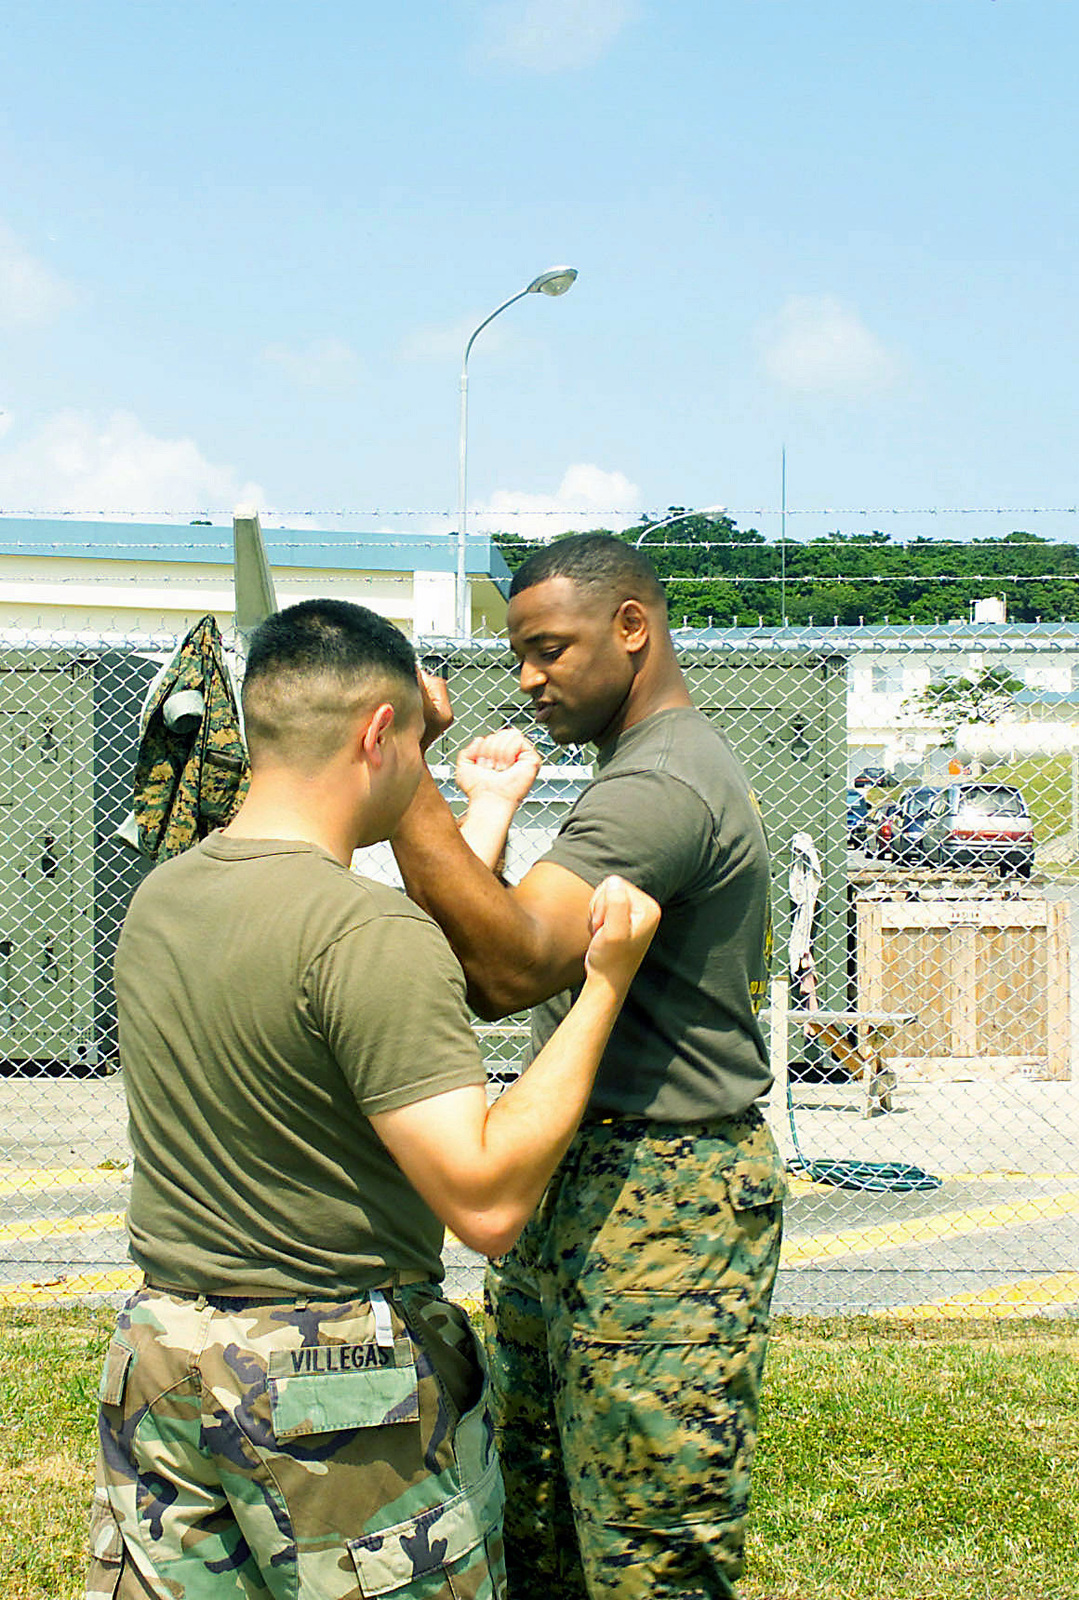 US Marine Corps (USMC) Corporal (CPL) Joe Villegas (left), a Videographer assigned to the Combat Visual Information Center (CVIC), and USMC Sergeant (SGT) Elvis Raines, a Graphic Artist assigned to the CVIC, demonstrate body-hardening exercises during a tan belt instructions course, part of the Marine Corps Martial Arts Program (MCMAP) at Camp Foster, Okinawa, Japan